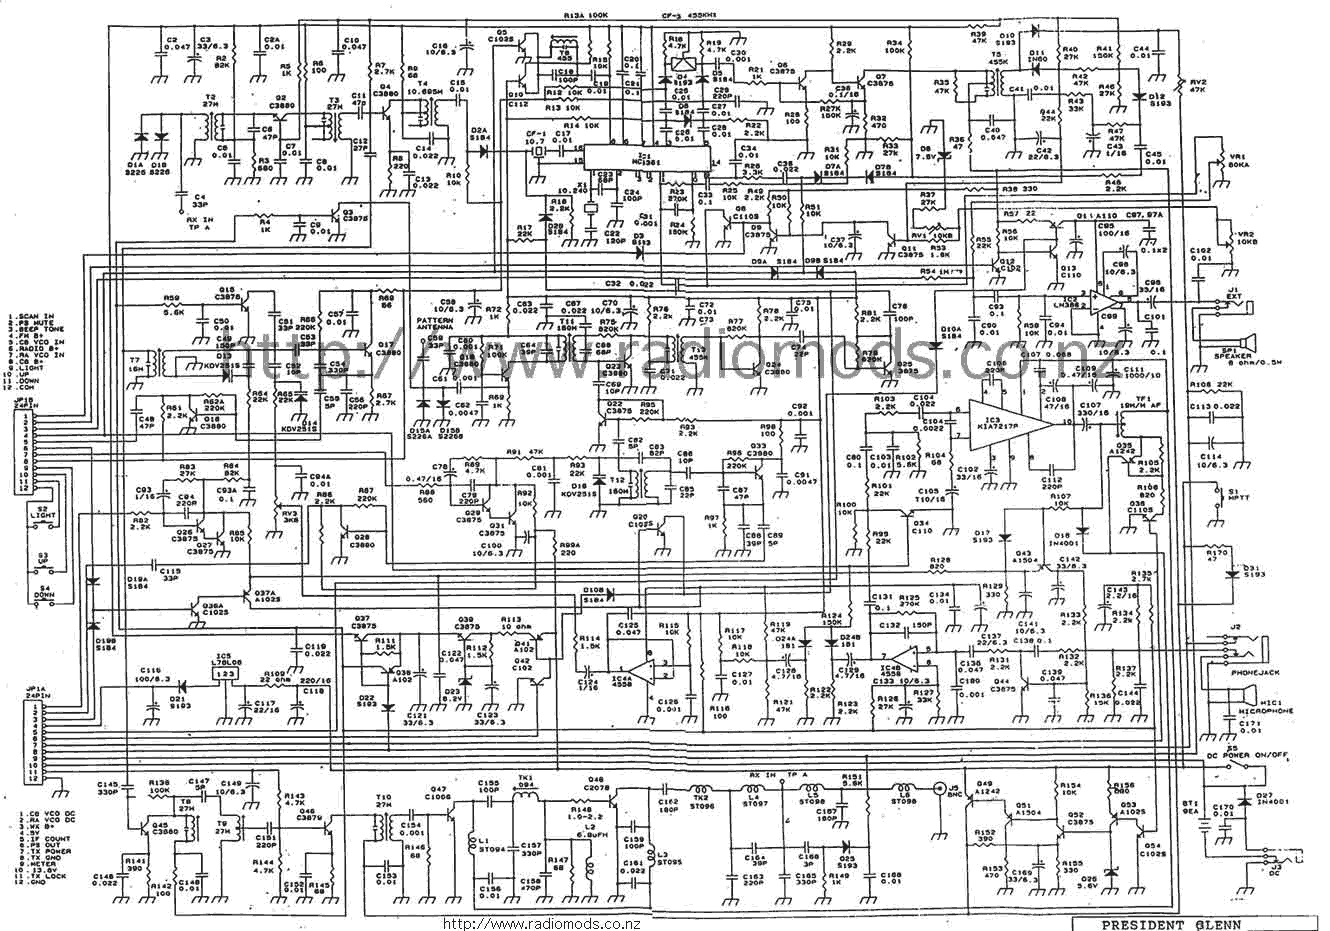 hight resolution of www radiomods co nz cbdiagrams presidentglenncd pn schematic diagram of printed circuit board diagram of circuit board